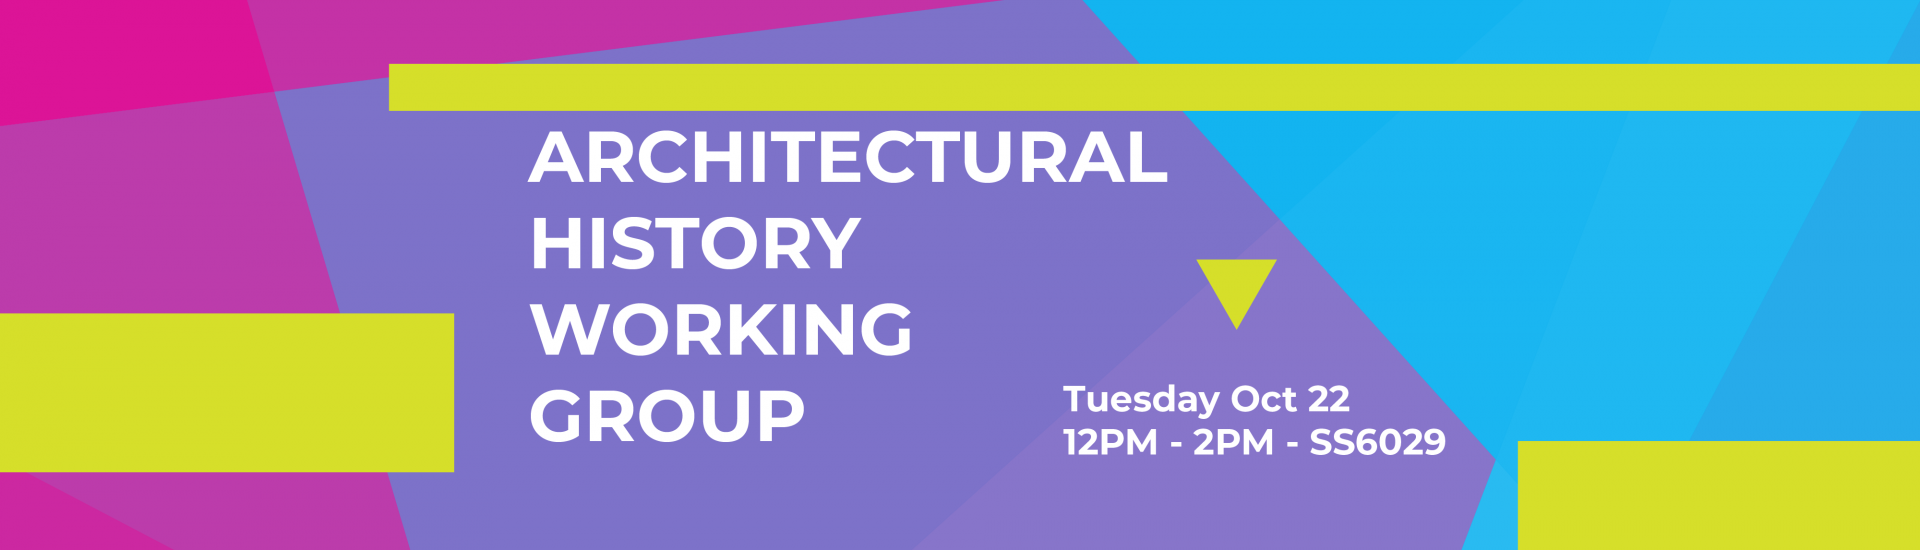 Architectural Working Group Tuesday Oct 22 12:00-14:00 SS6029